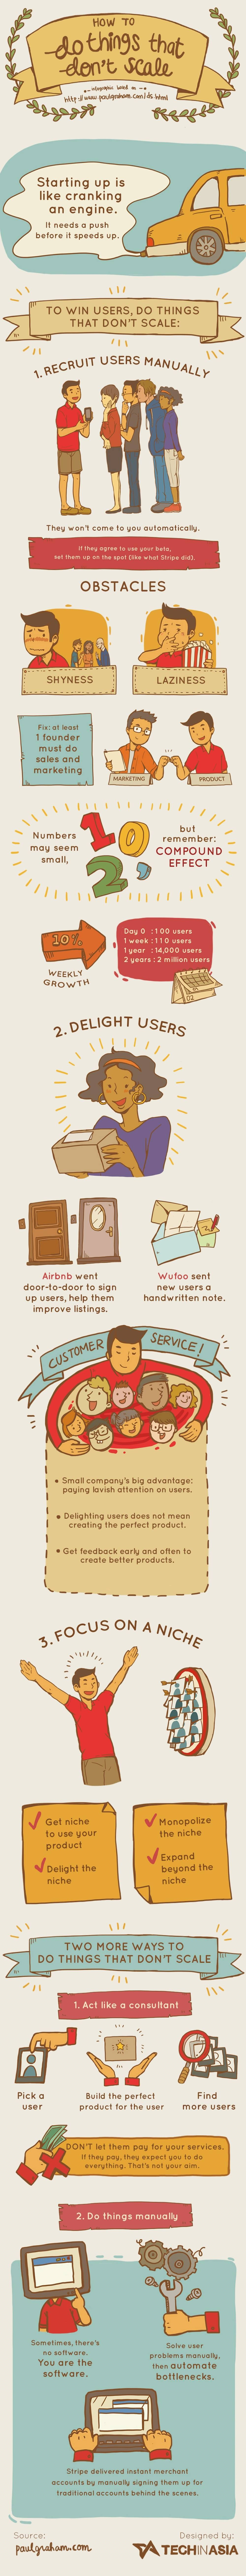 Infographic-do-things-dont-scale-1